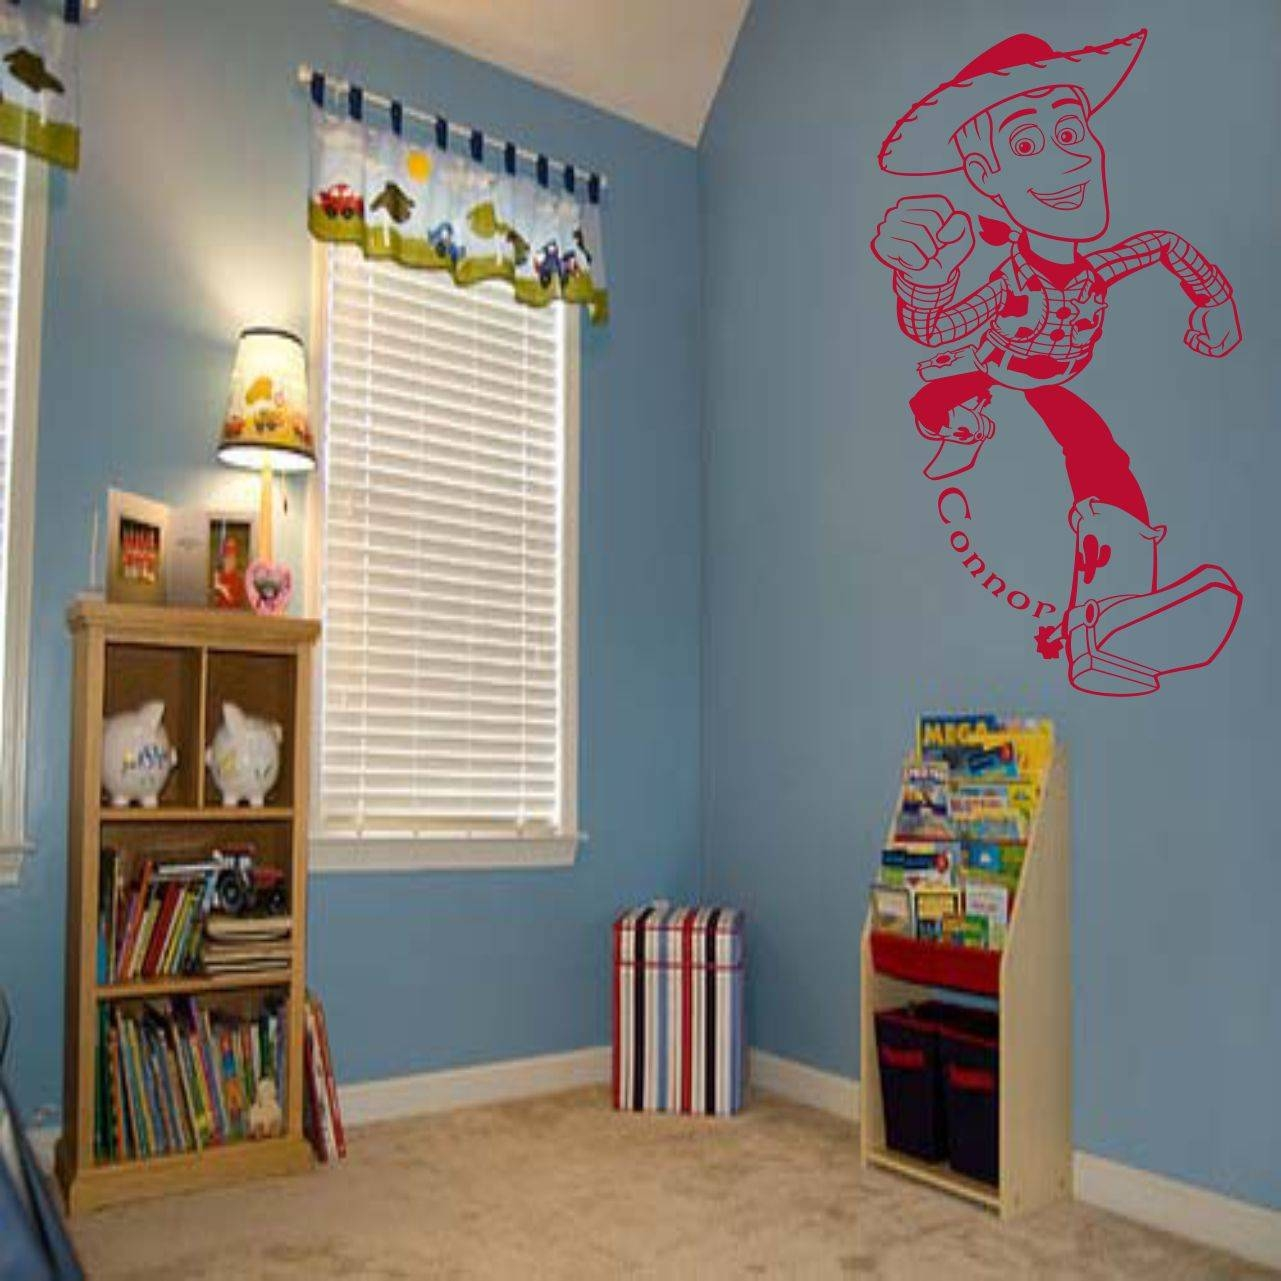 Fantastic Toy Story Woody Wall Art Decal Vinyl Sticker Wall Throughout 2017 Toy Story Wall Stickers (View 15 of 25)